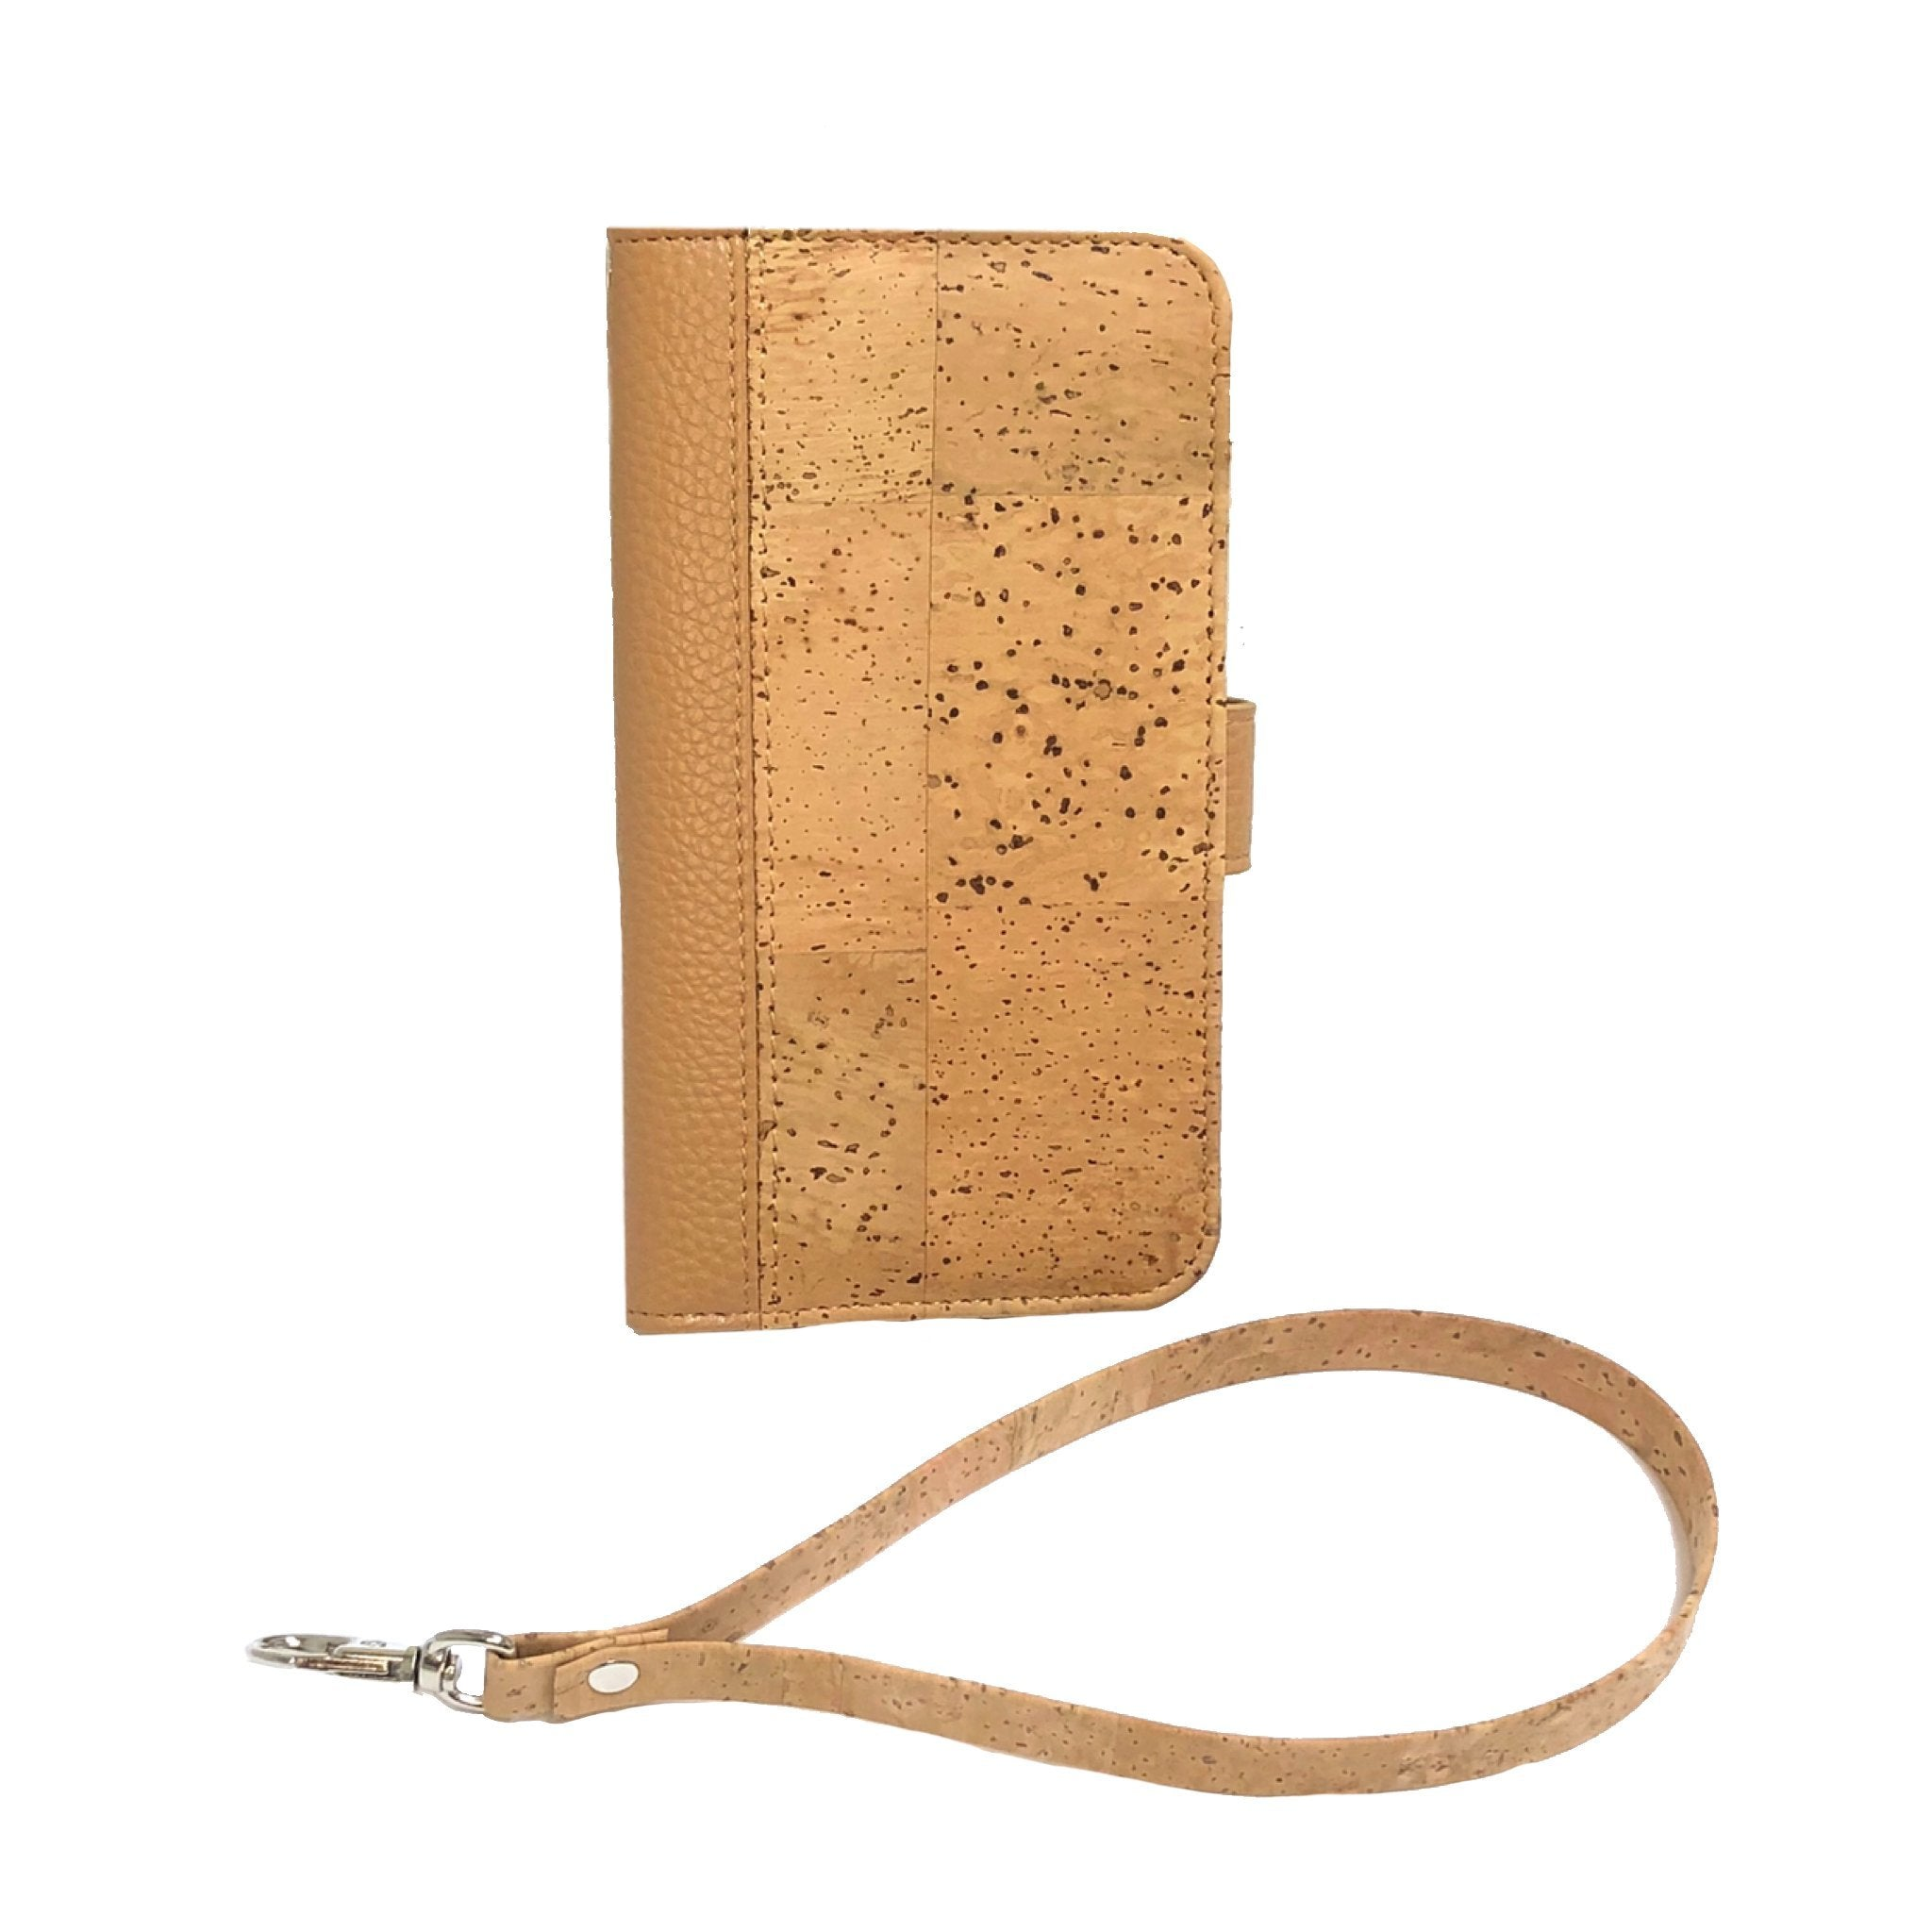 queork cork iphone wallet case natural